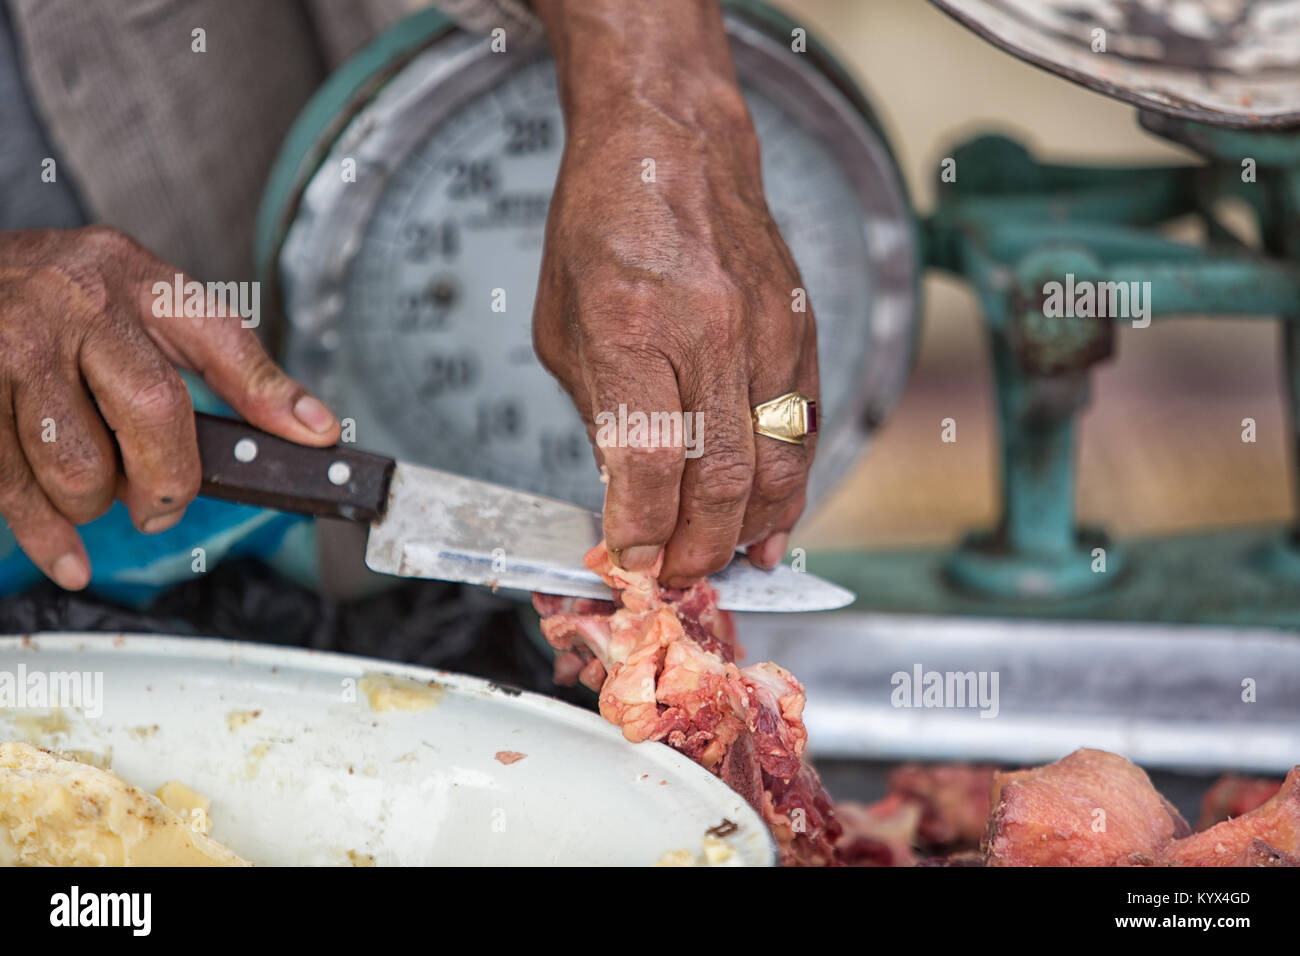 Otavalo, Ecuador - December 30, 2017: closeup of butcher's hand cutting meat with knife in the weekly farmers - Stock Image